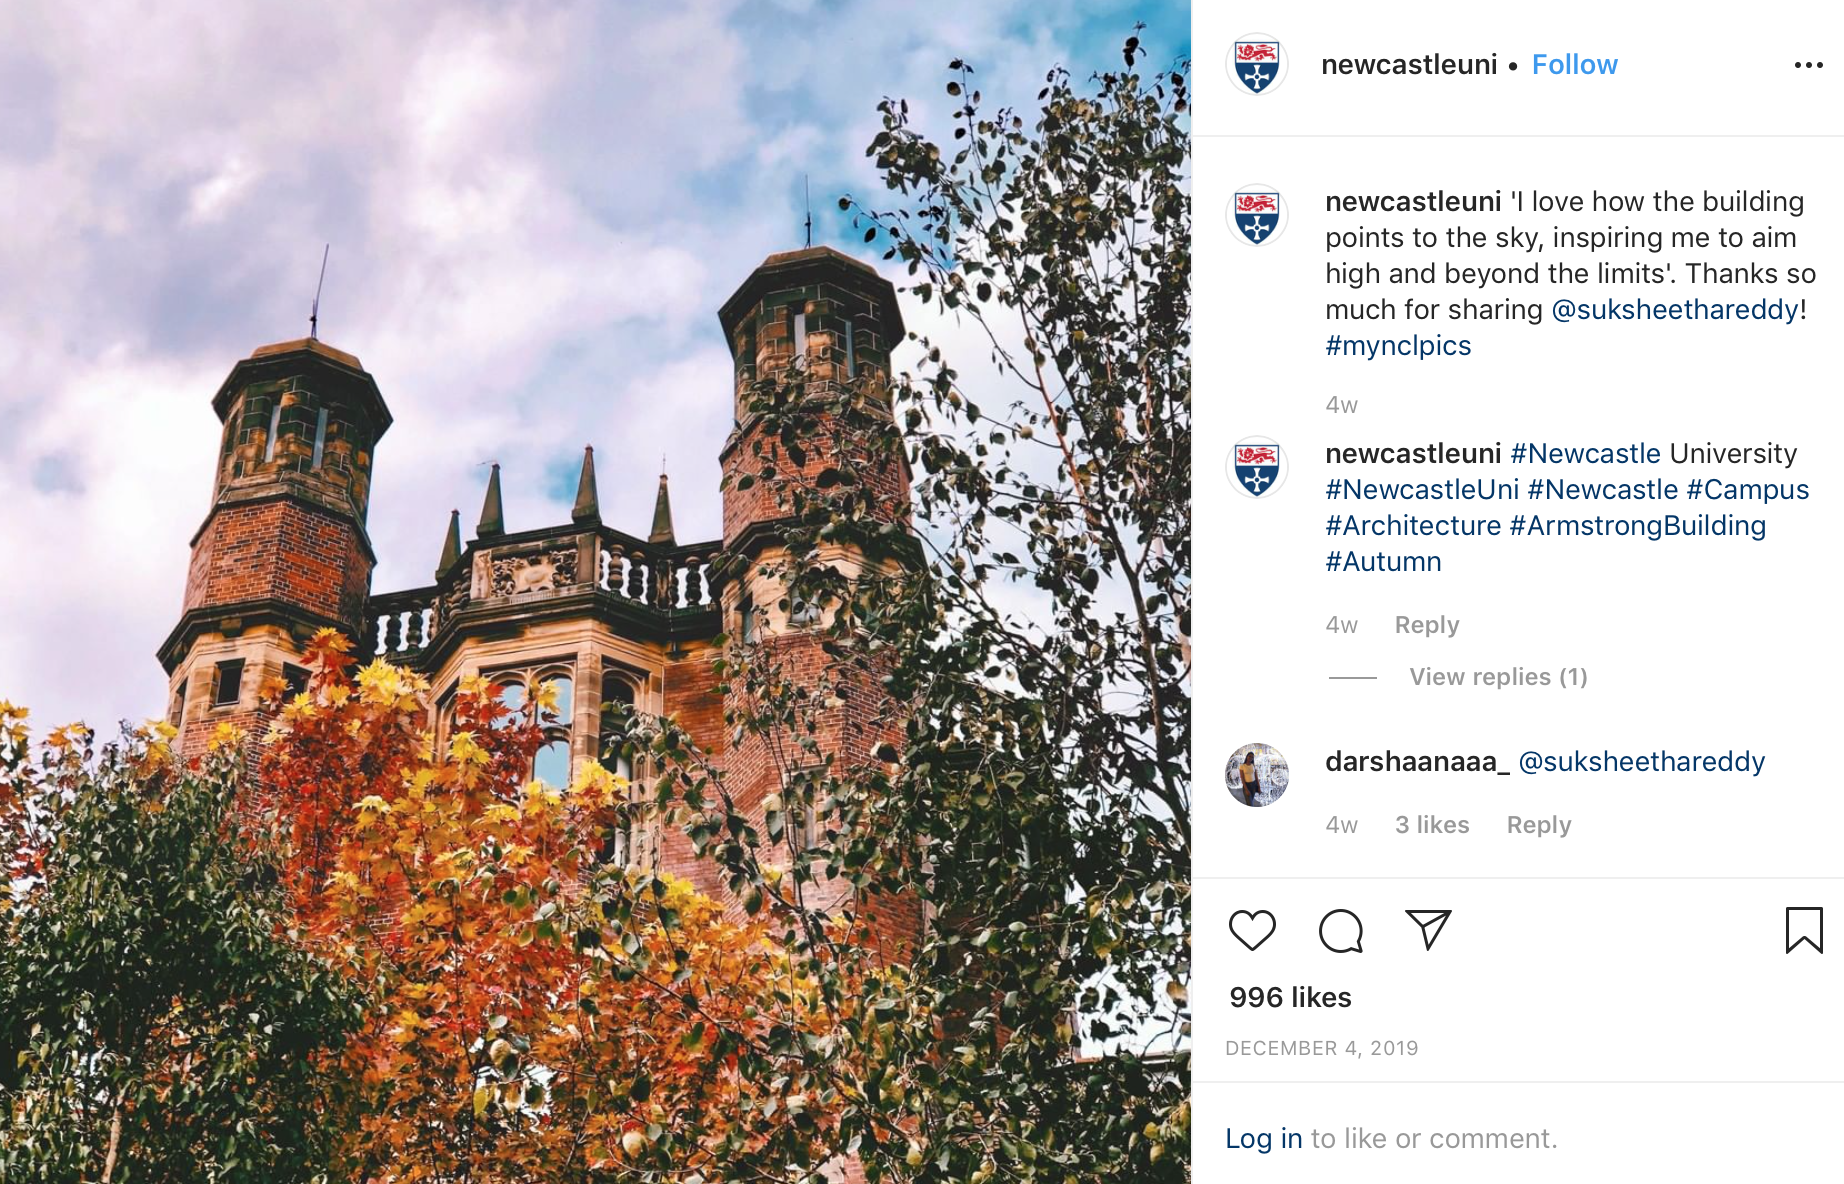 An Instagram image of a Newcastle University building with trees and sky. The caption from a student says 'I love how the building points to the sky, inspiring me to aim high and beyond my limits.'